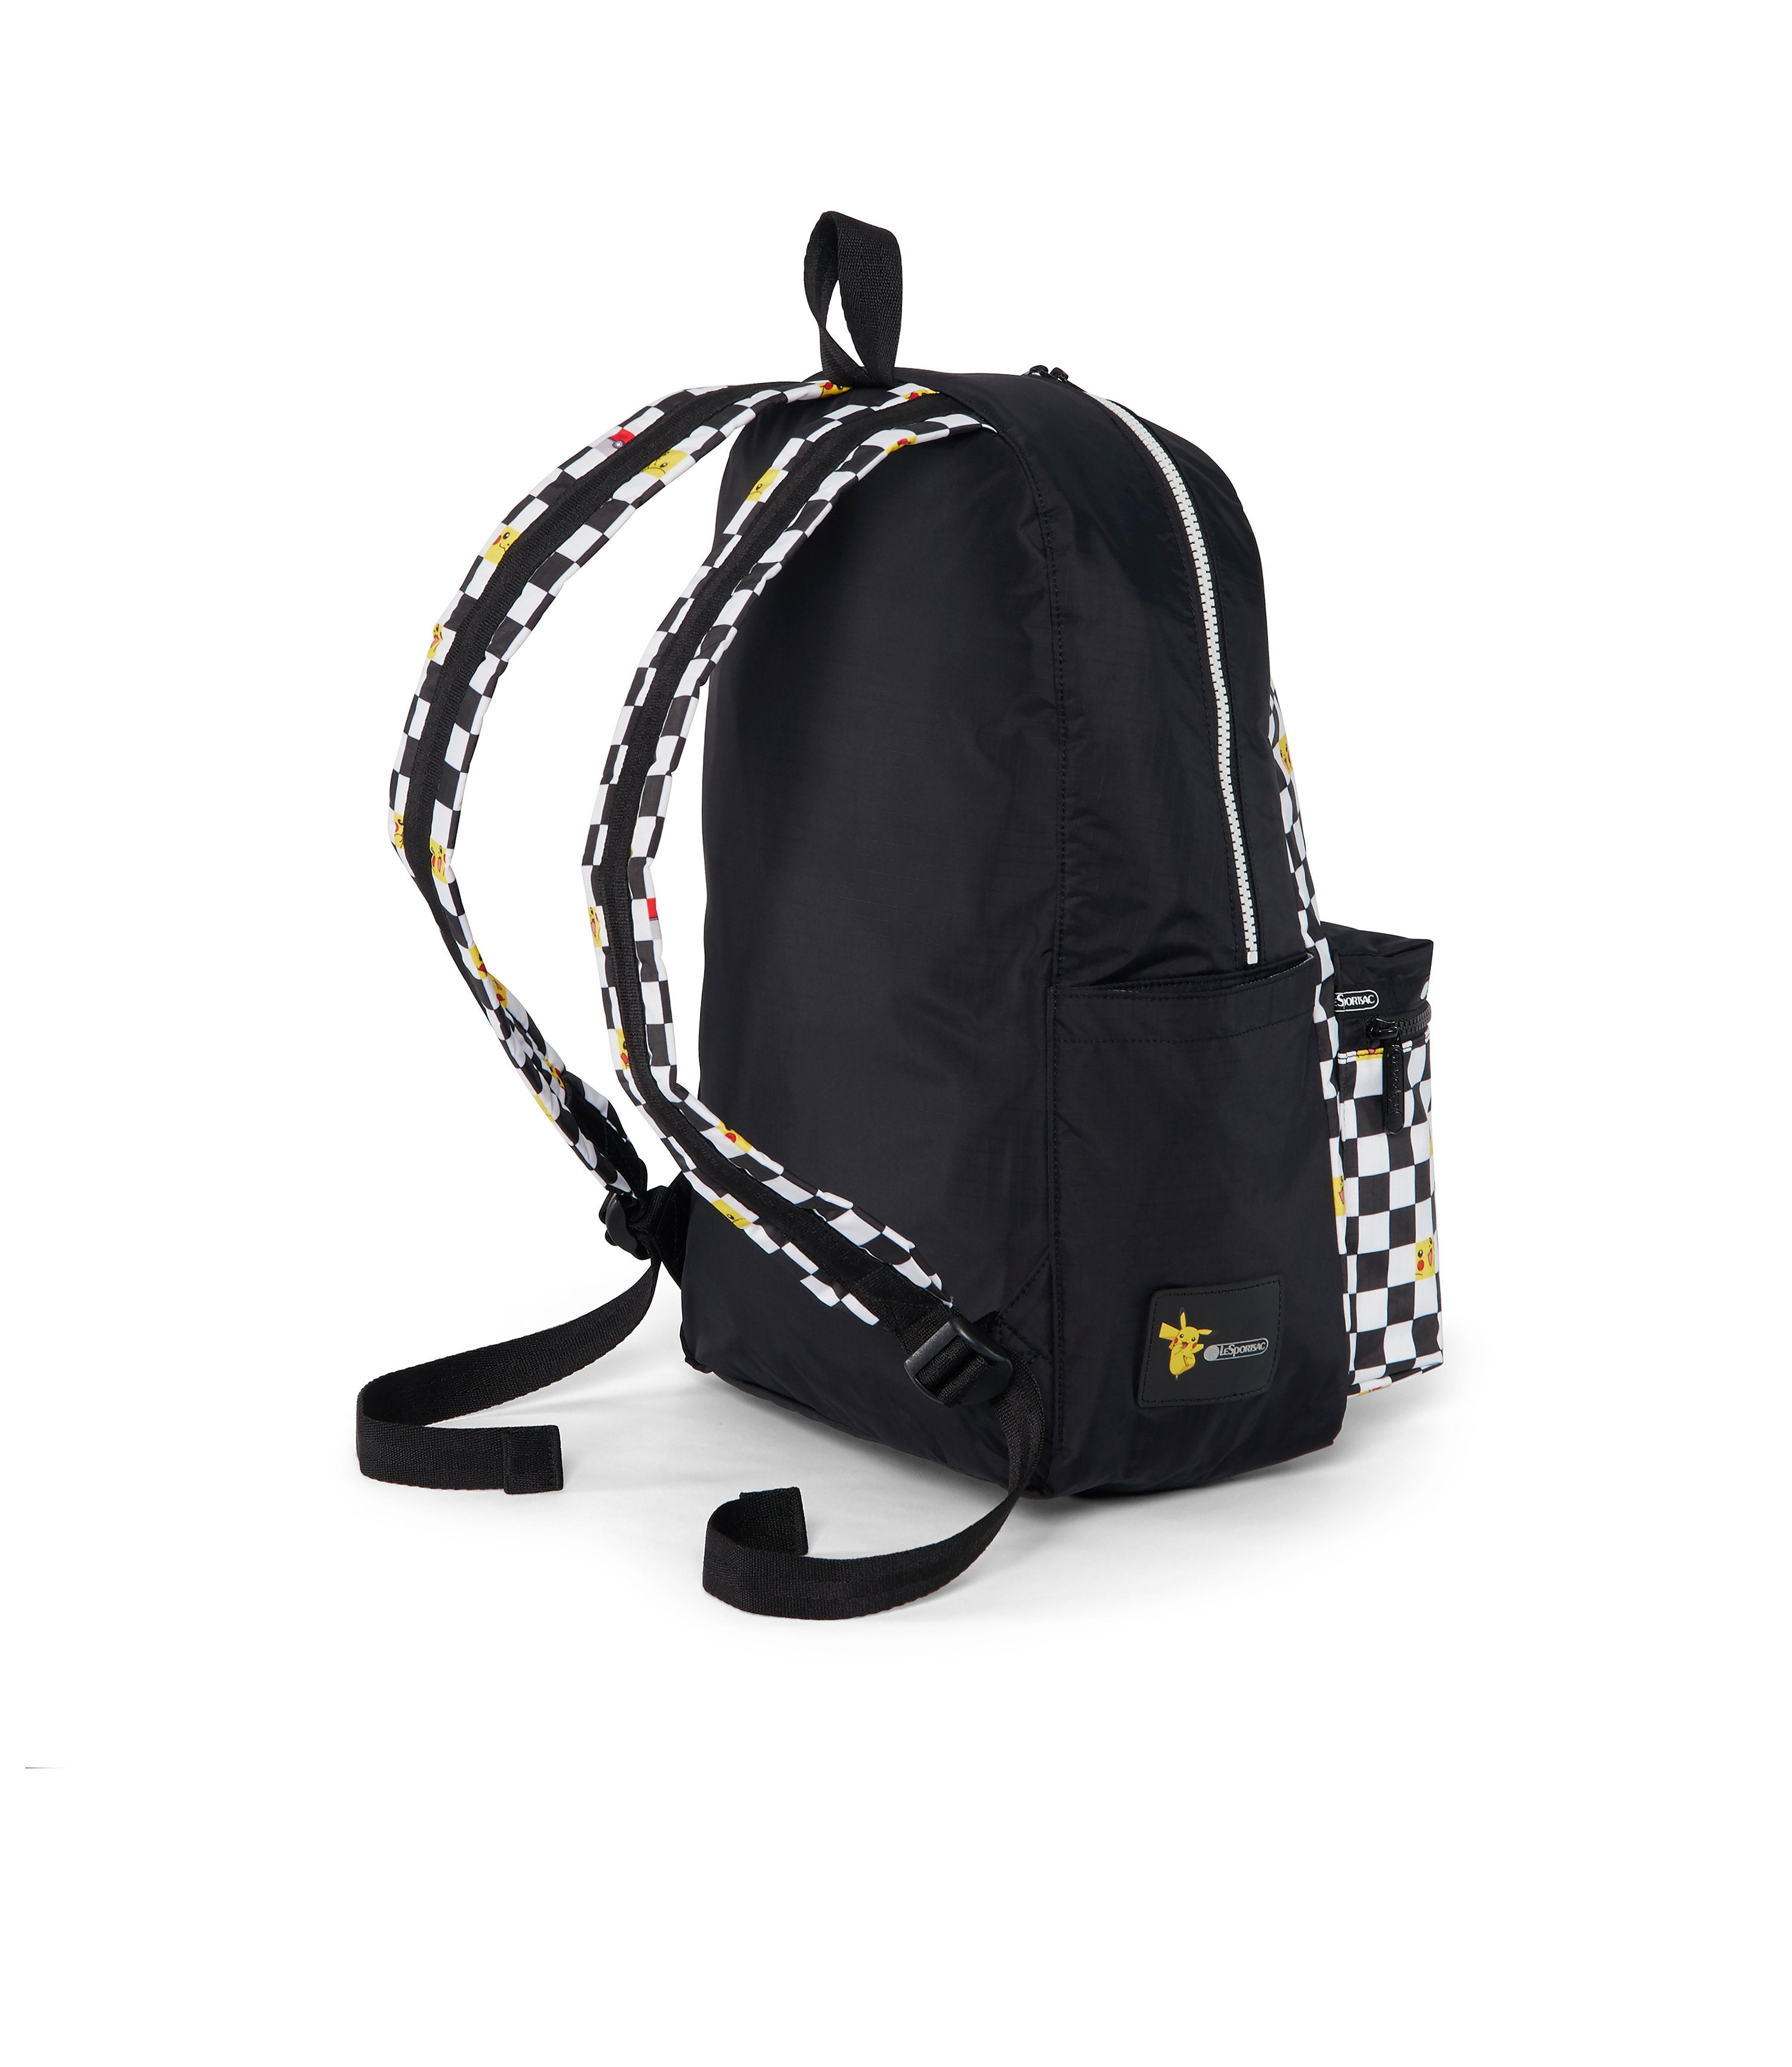 Pokémon XL Carson Backpack-LeSportsac-Large-Bookbag-checkered-side